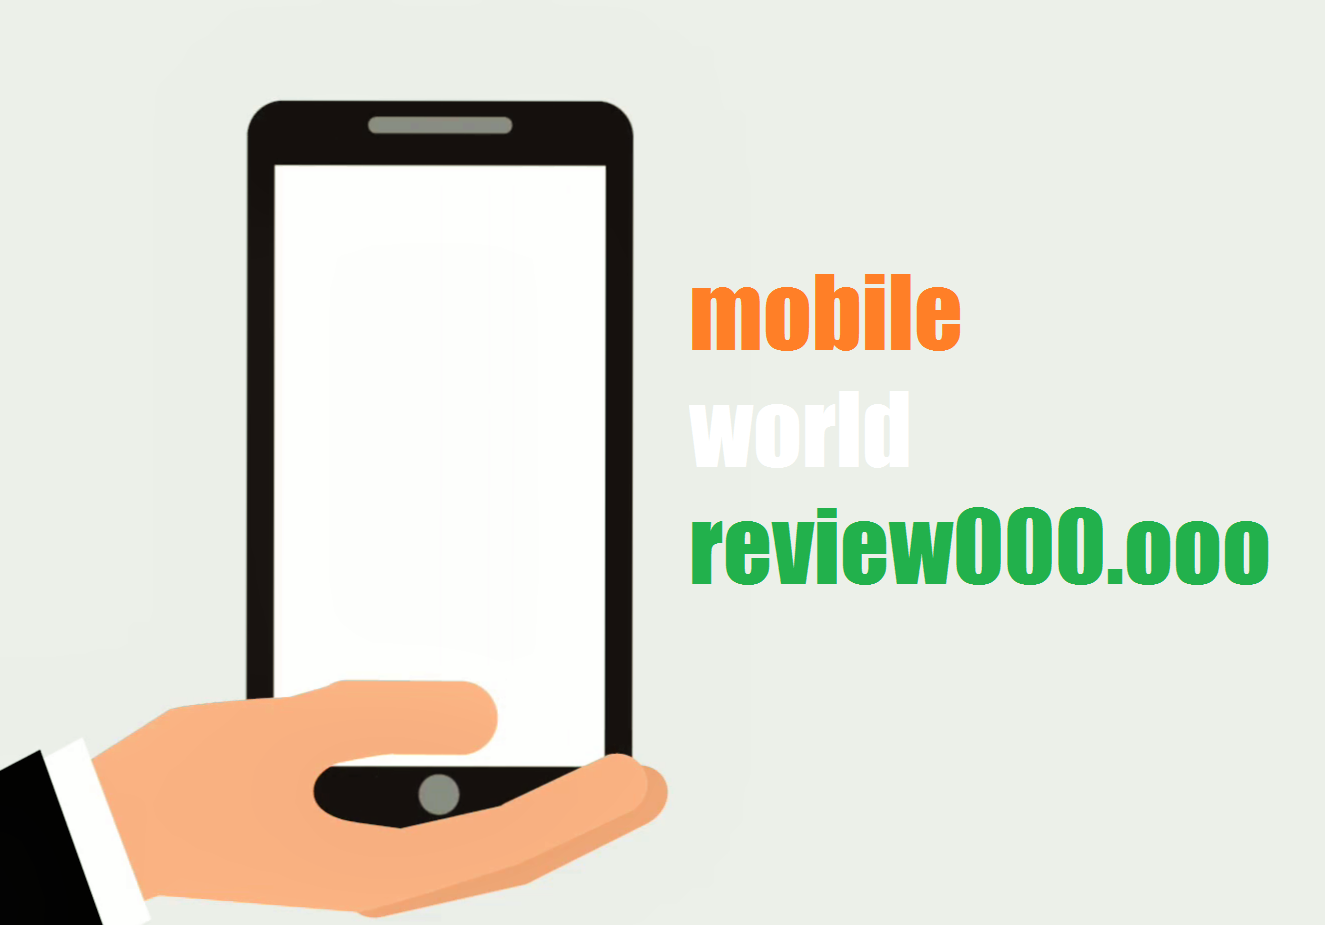 mobile review-latest mobilephone's 2018 review and technology tricks2018